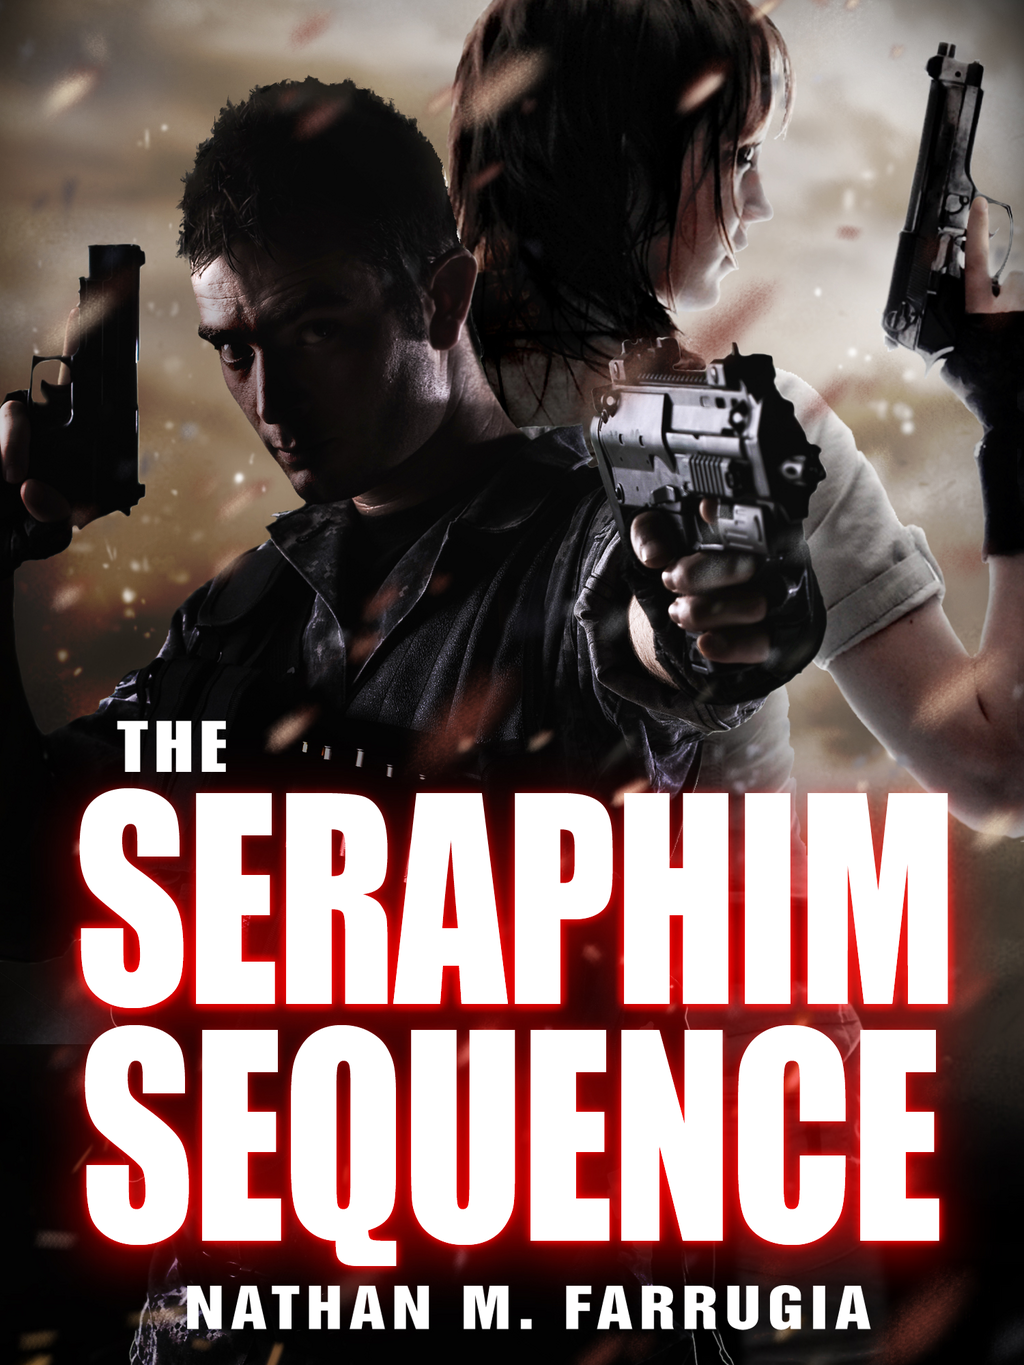 The Seraphim Sequence